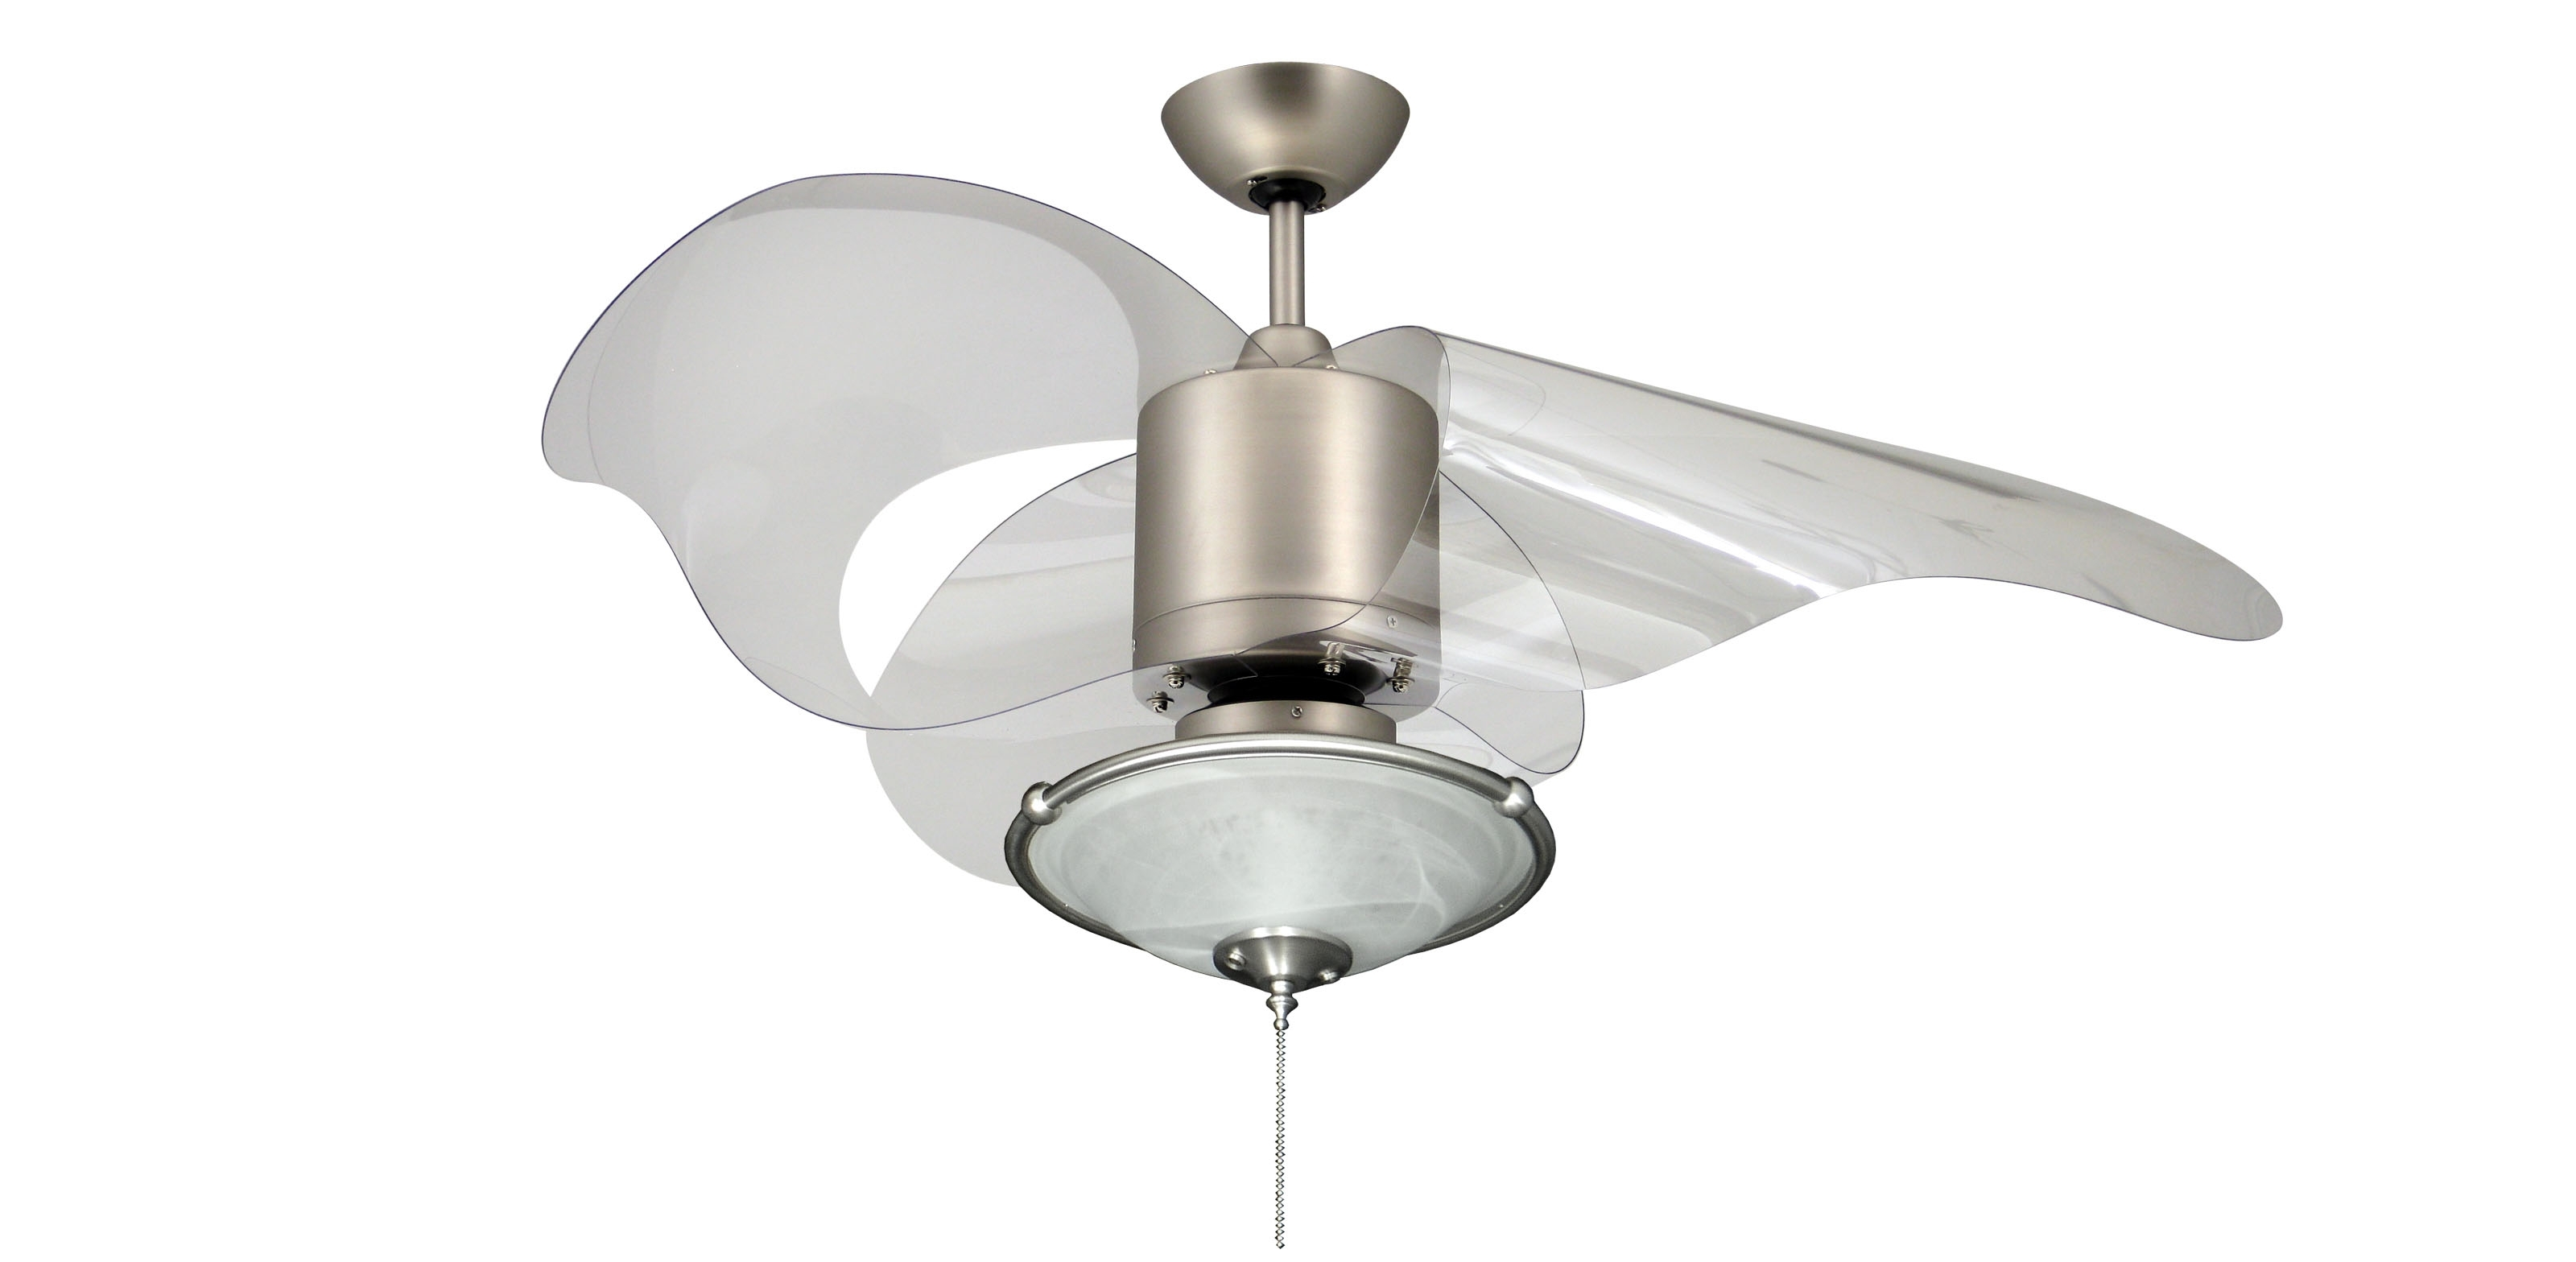 Popular Stainless Steel Outdoor Ceiling Fans With Light In Contemporary Ceiling Fans With Light (View 16 of 20)